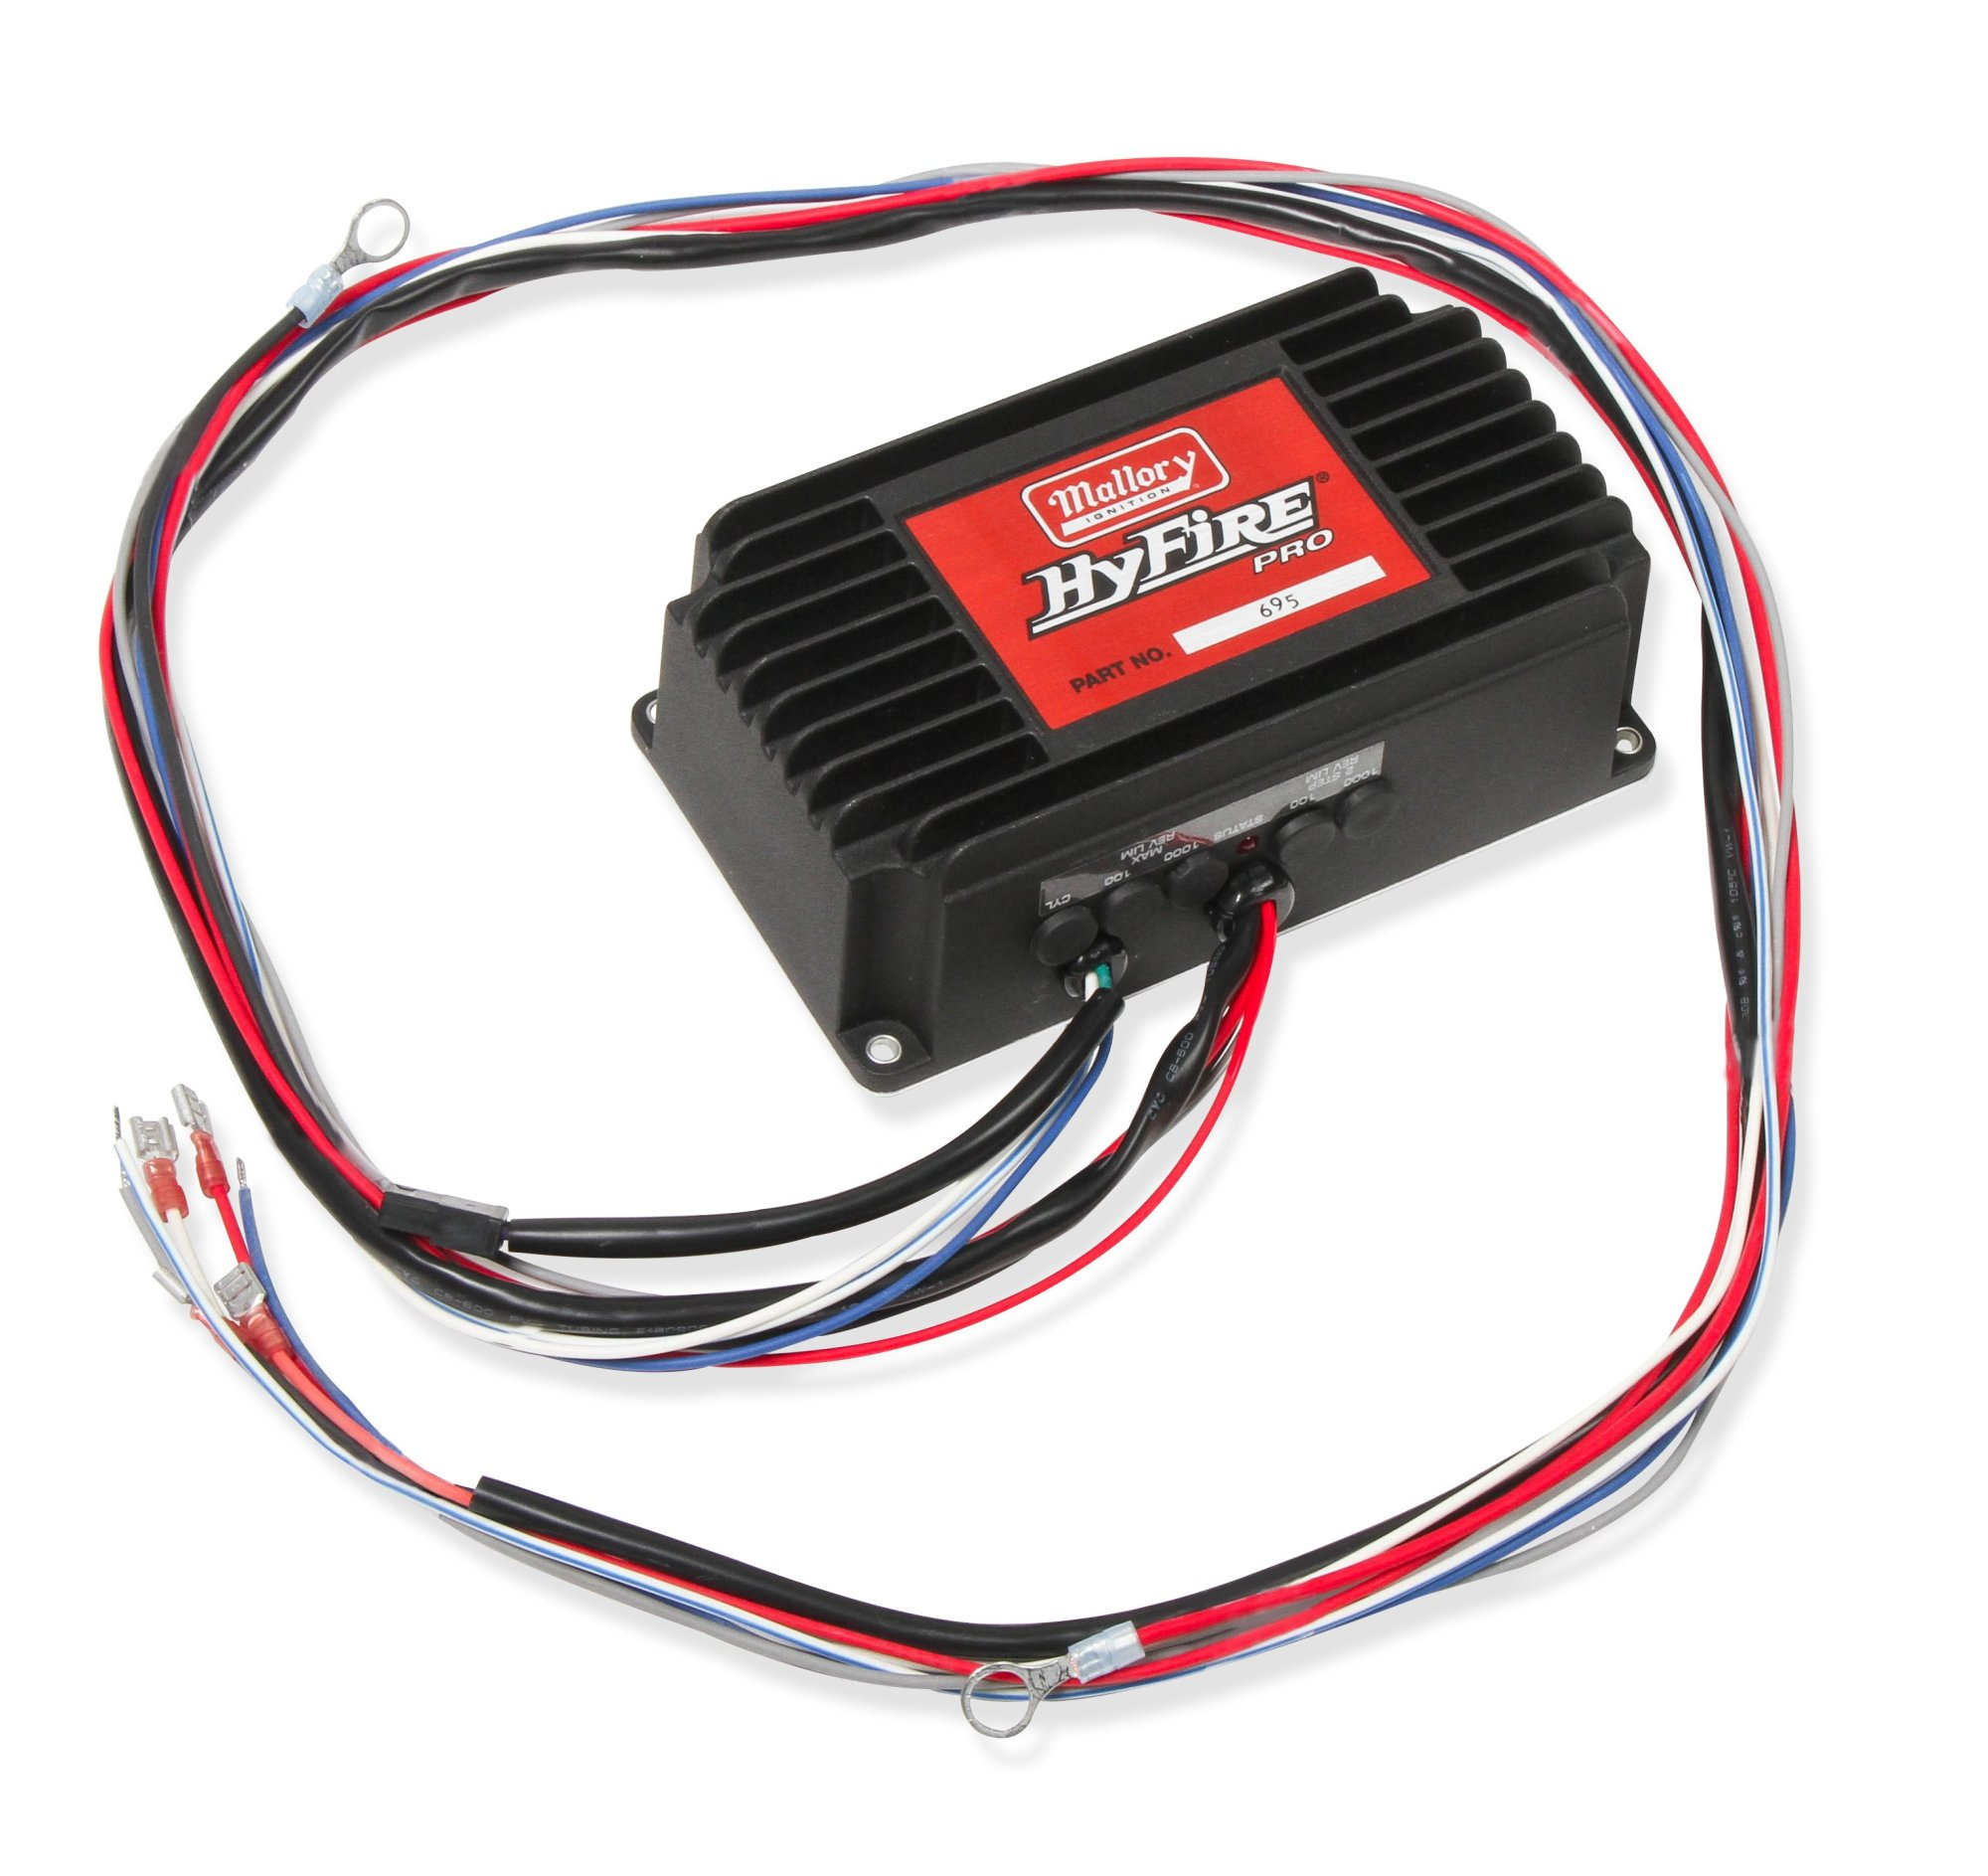 hight resolution of 695 mallory hyfire pro ignition box image